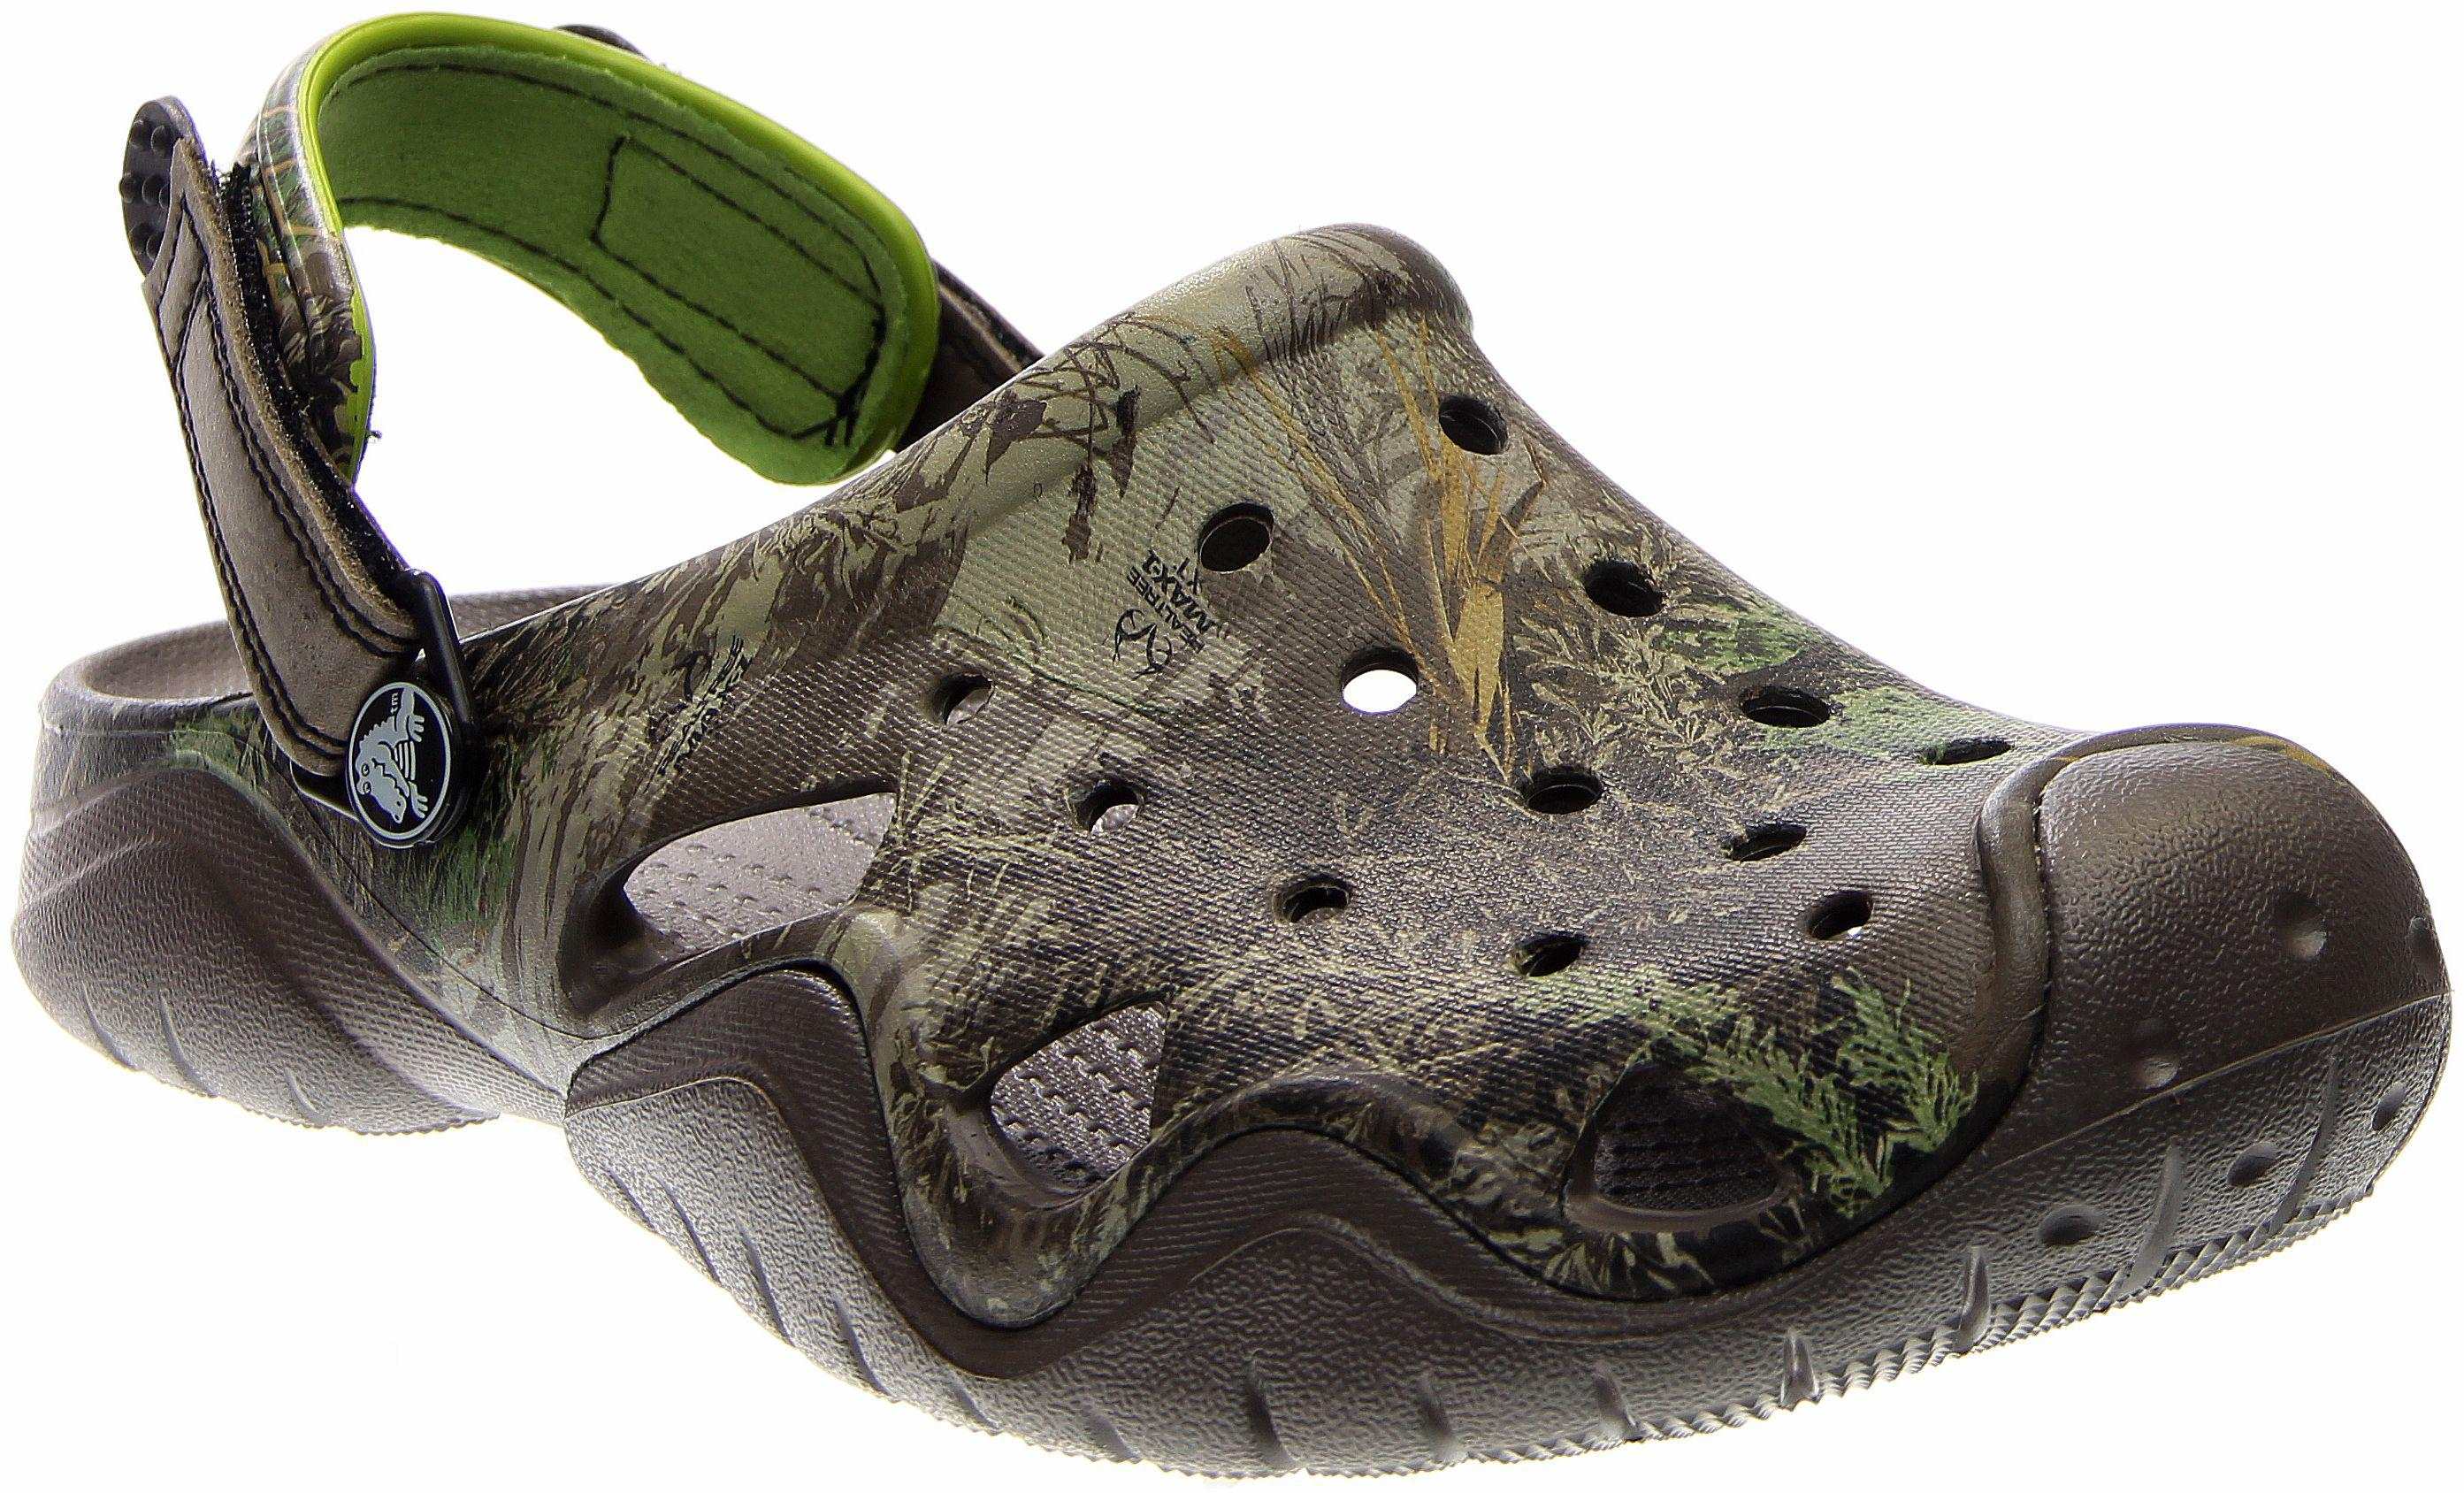 795a9c68ceeed Lyst - Crocs™ Swiftwater Realtree Max-1 Swiftwater Realtree Max-1 ...